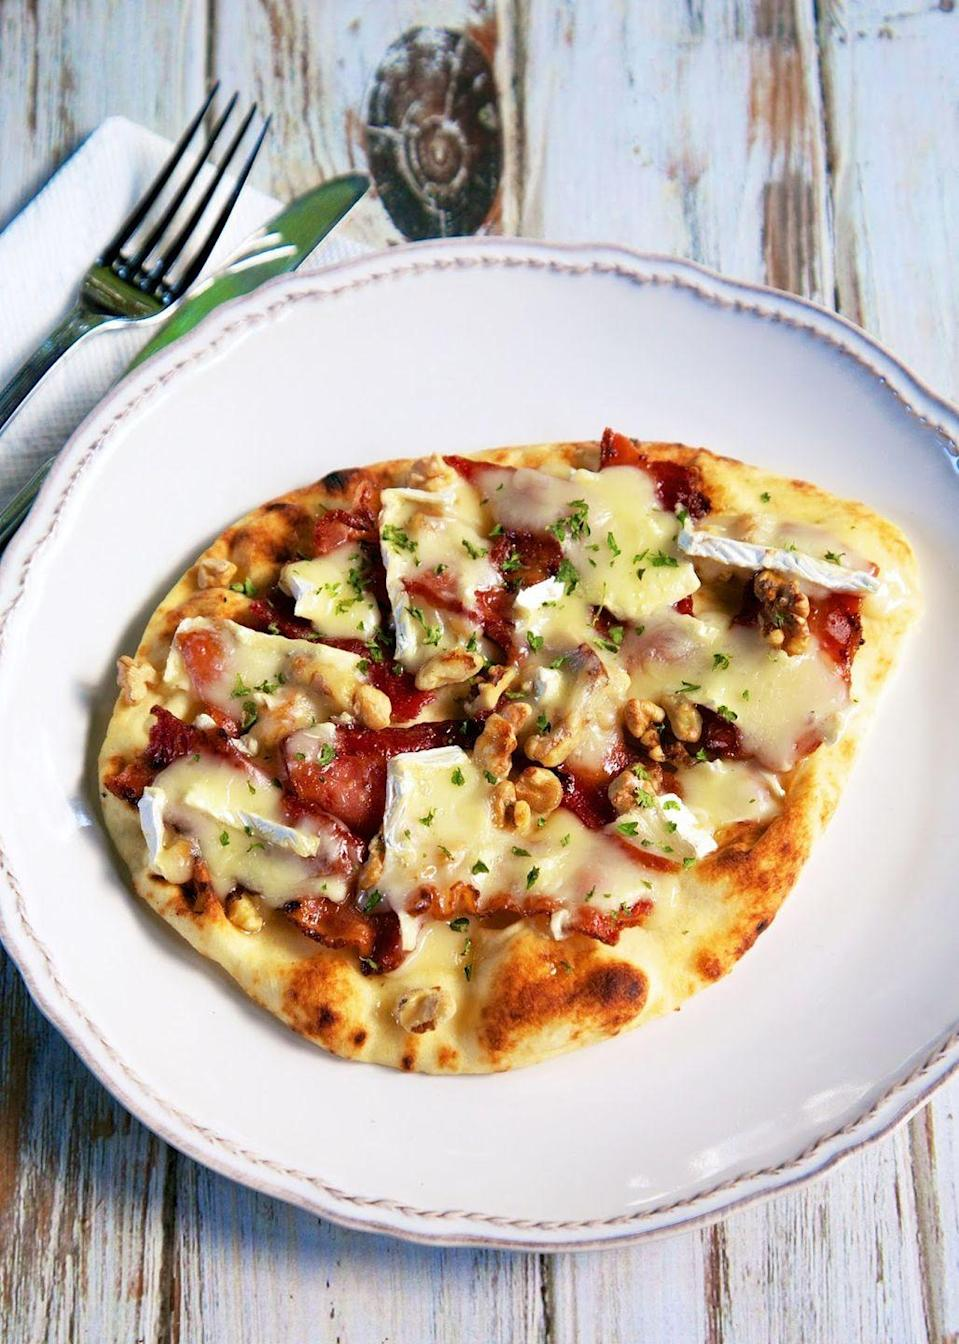 """<p>This flatbread is a total blend of sweet, salty, crunchy, and creamy.</p><p>Get the recipe at <a href=""""http://www.plainchicken.com/2014/11/honey-bacon-brie-walnut-flatbread.html"""" rel=""""nofollow noopener"""" target=""""_blank"""" data-ylk=""""slk:Plain Chicken"""" class=""""link rapid-noclick-resp"""">Plain Chicken</a>.</p>"""